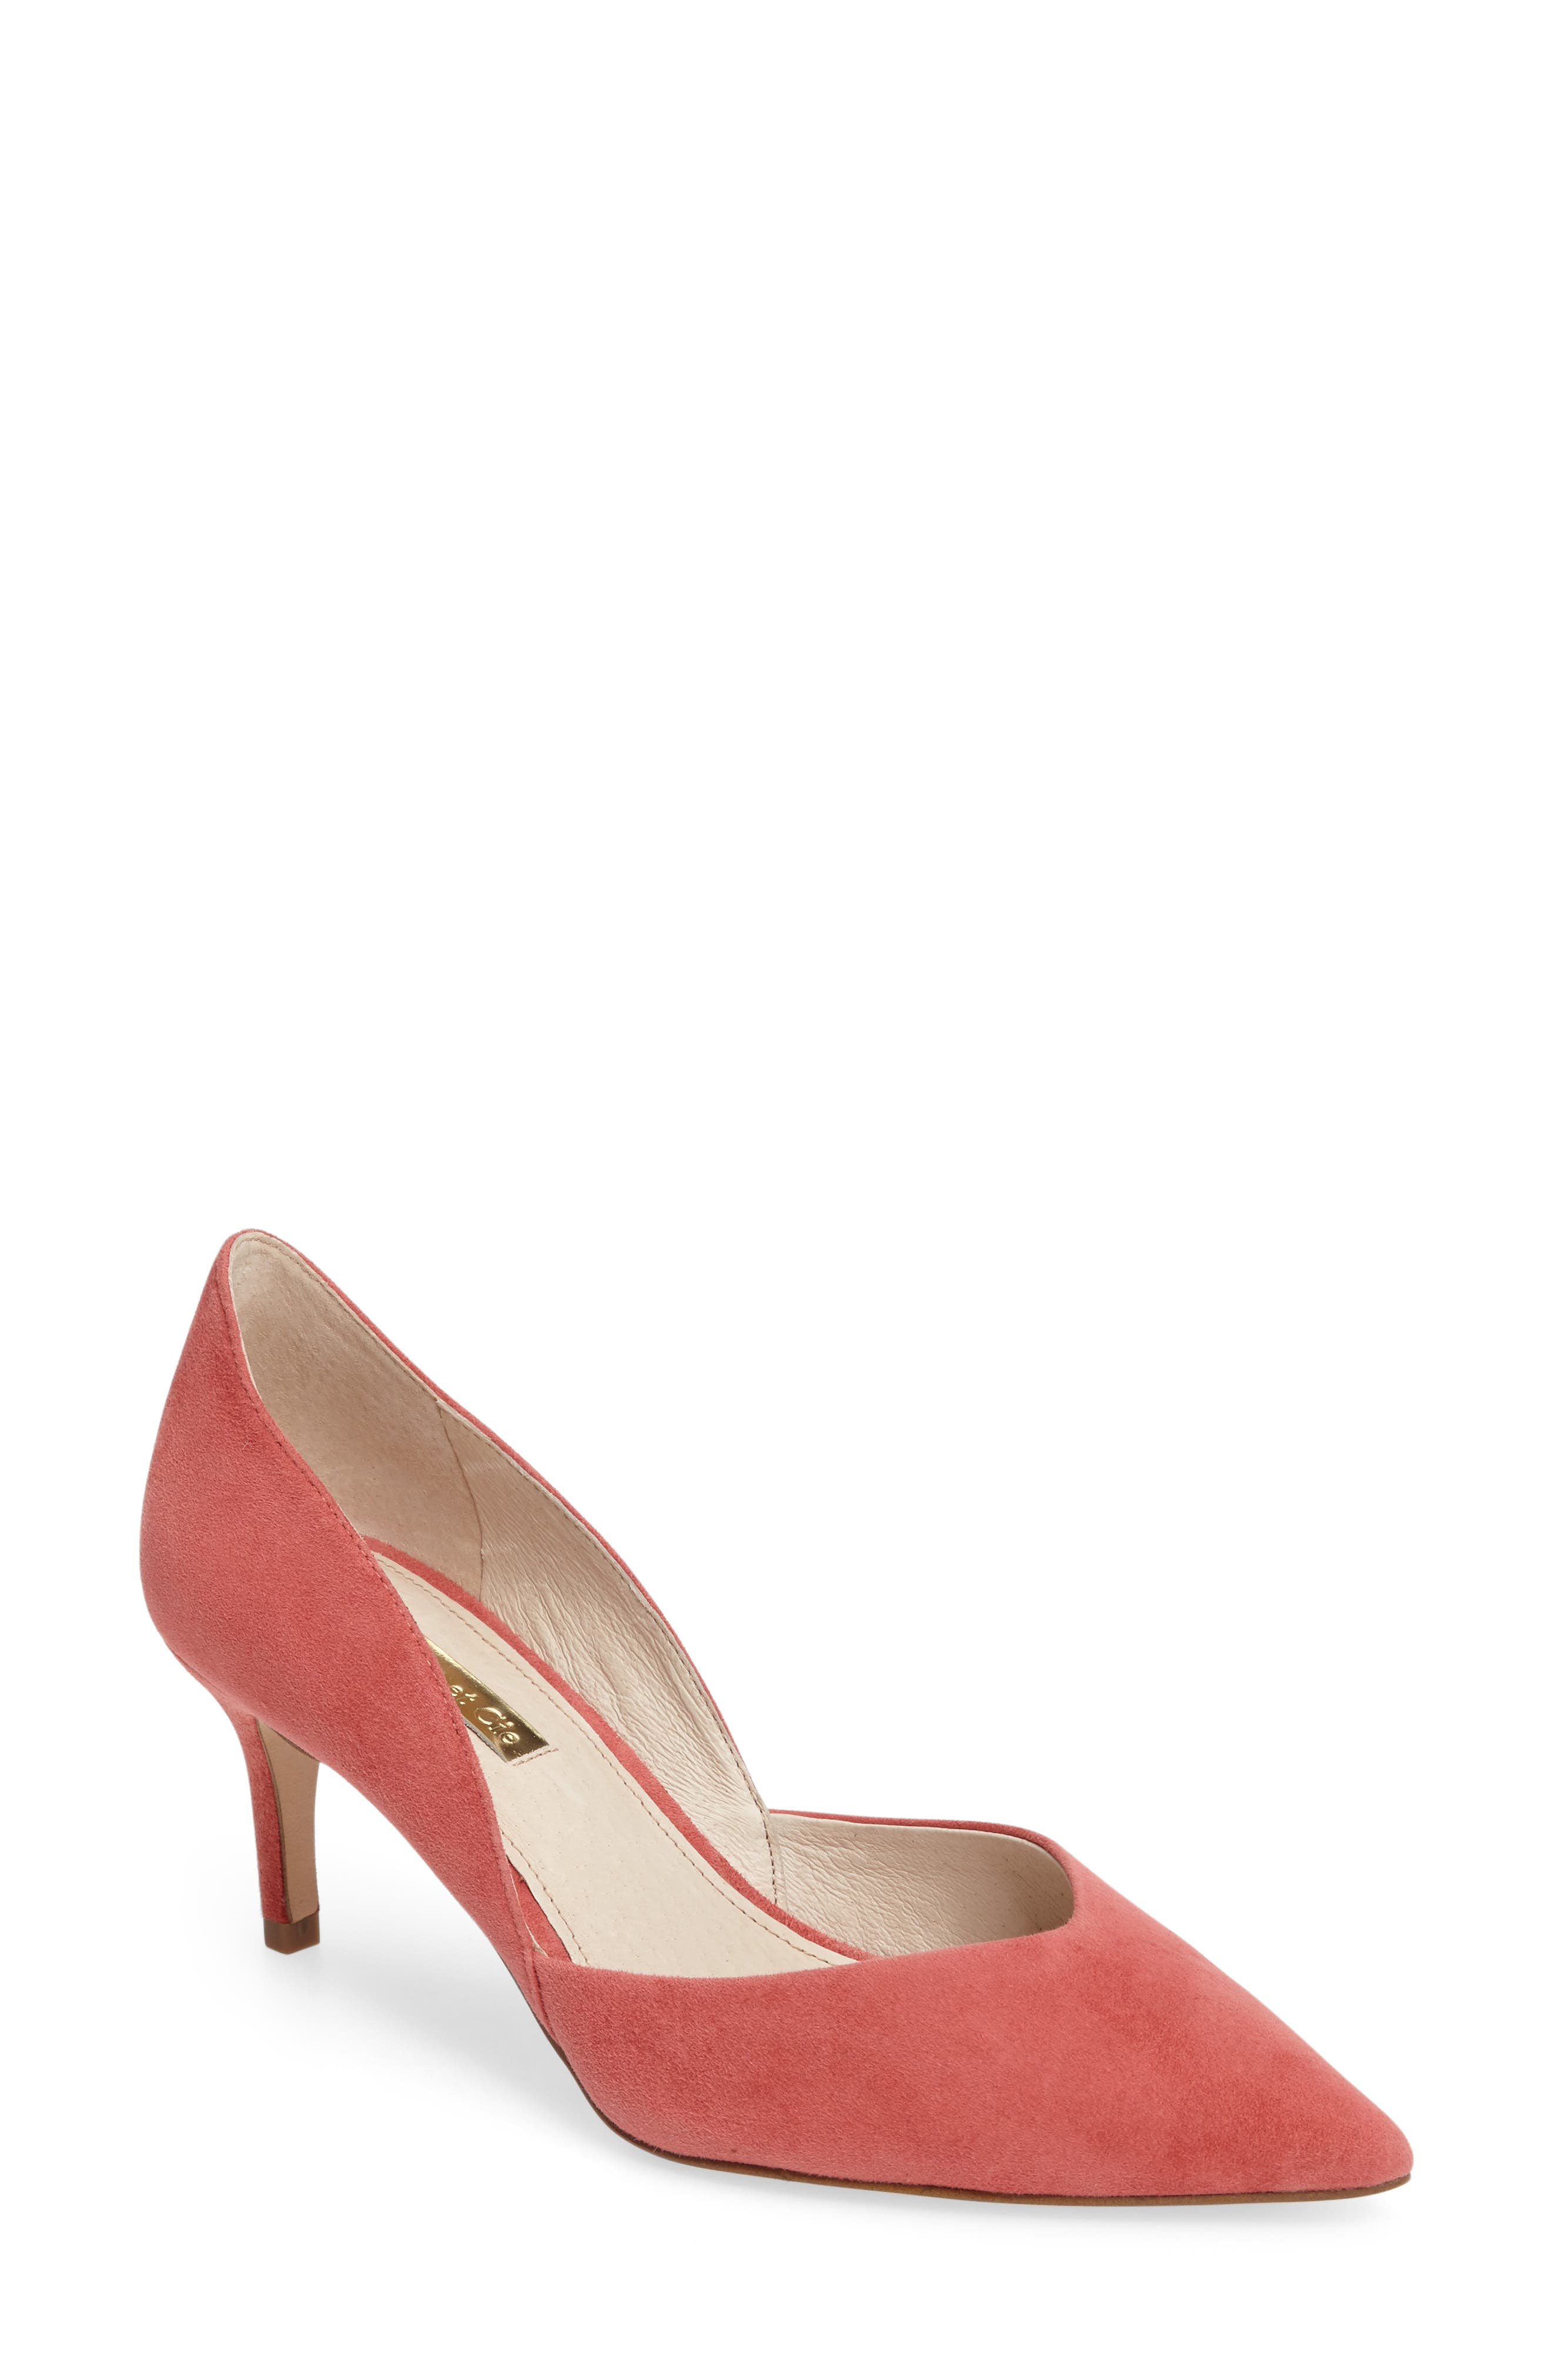 Main Image - Louise et Cie Jacee Pointy Toe Pump (Women)